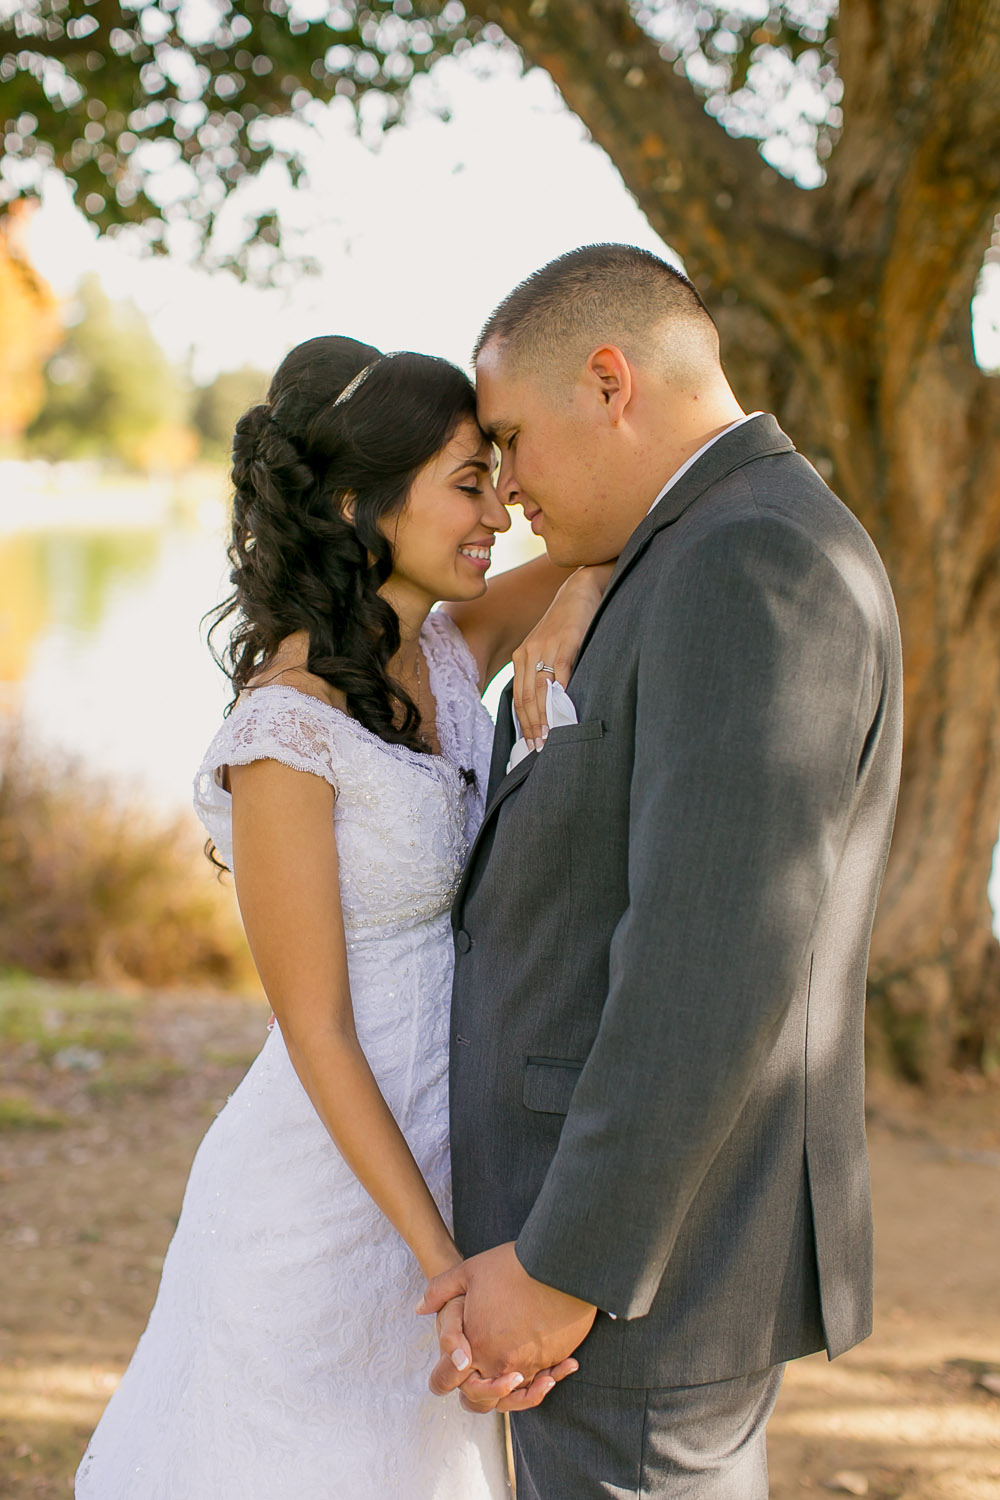 los angeles wedding photography, almansor court, love, bride, groom, bridal portraits, chris holt photography